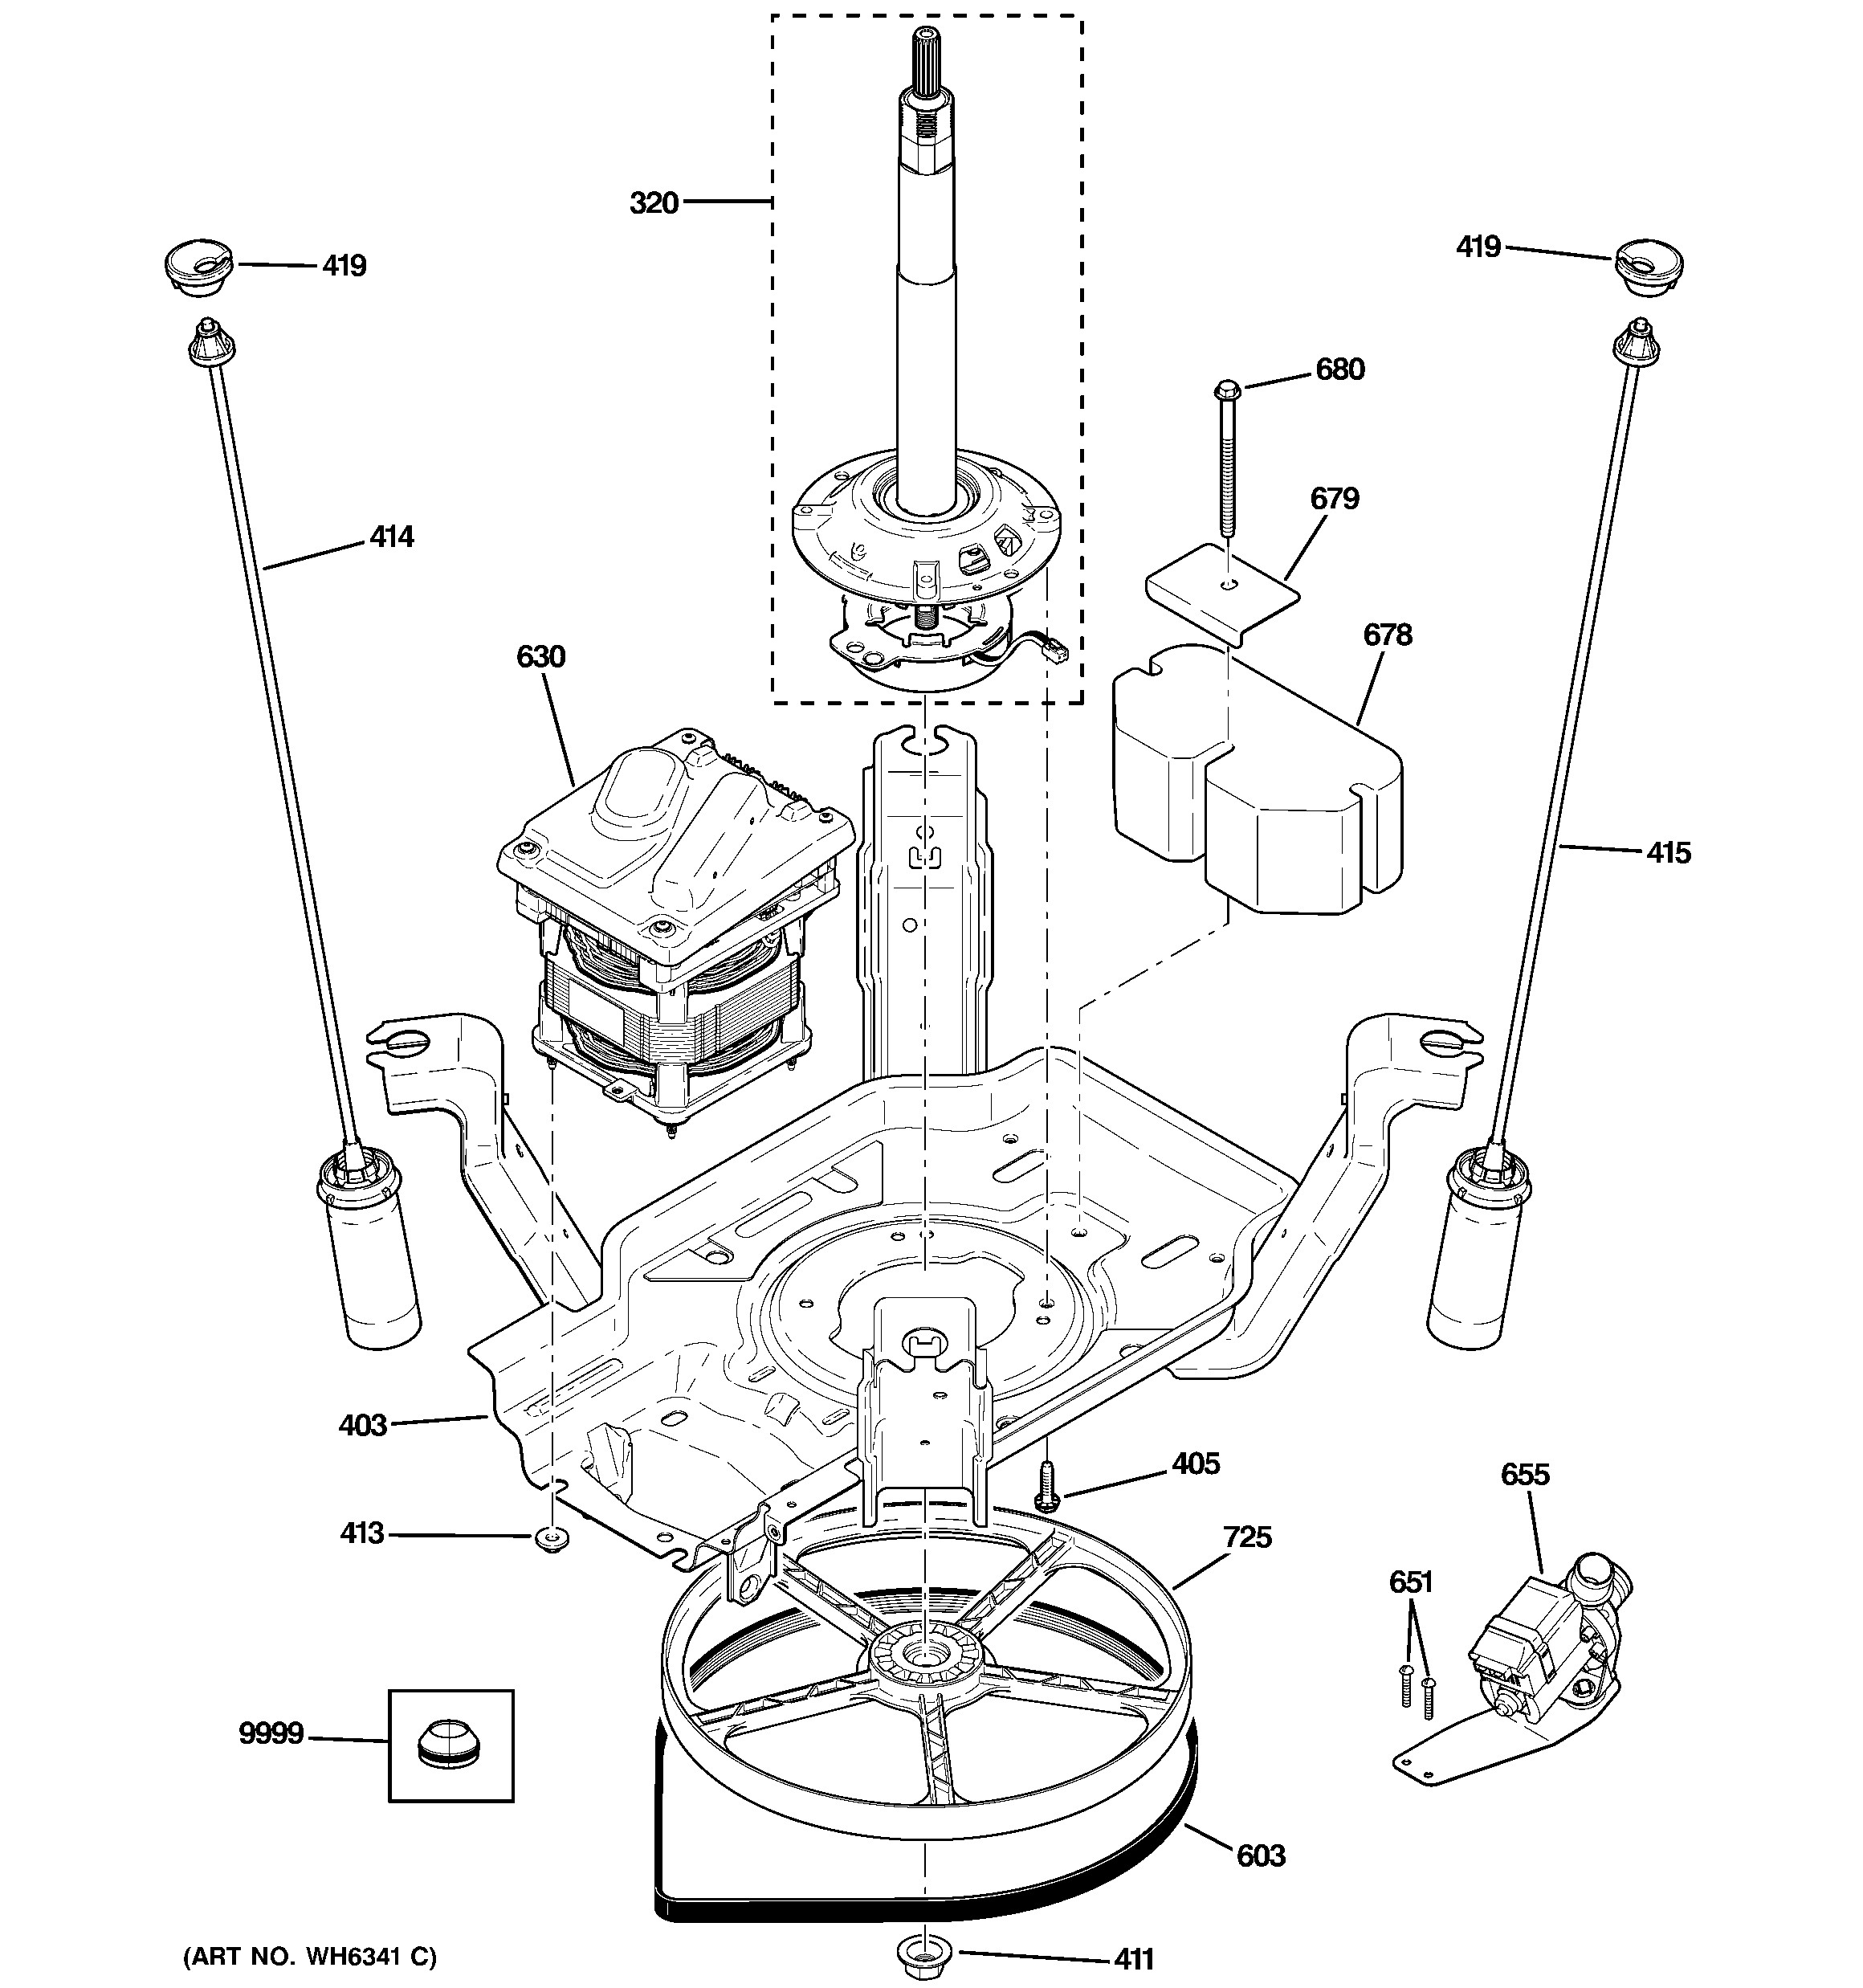 Automotive Parts Diagram Ge Model Gtwn4450m1ws Residential Washers Genuine Parts Of Automotive Parts Diagram